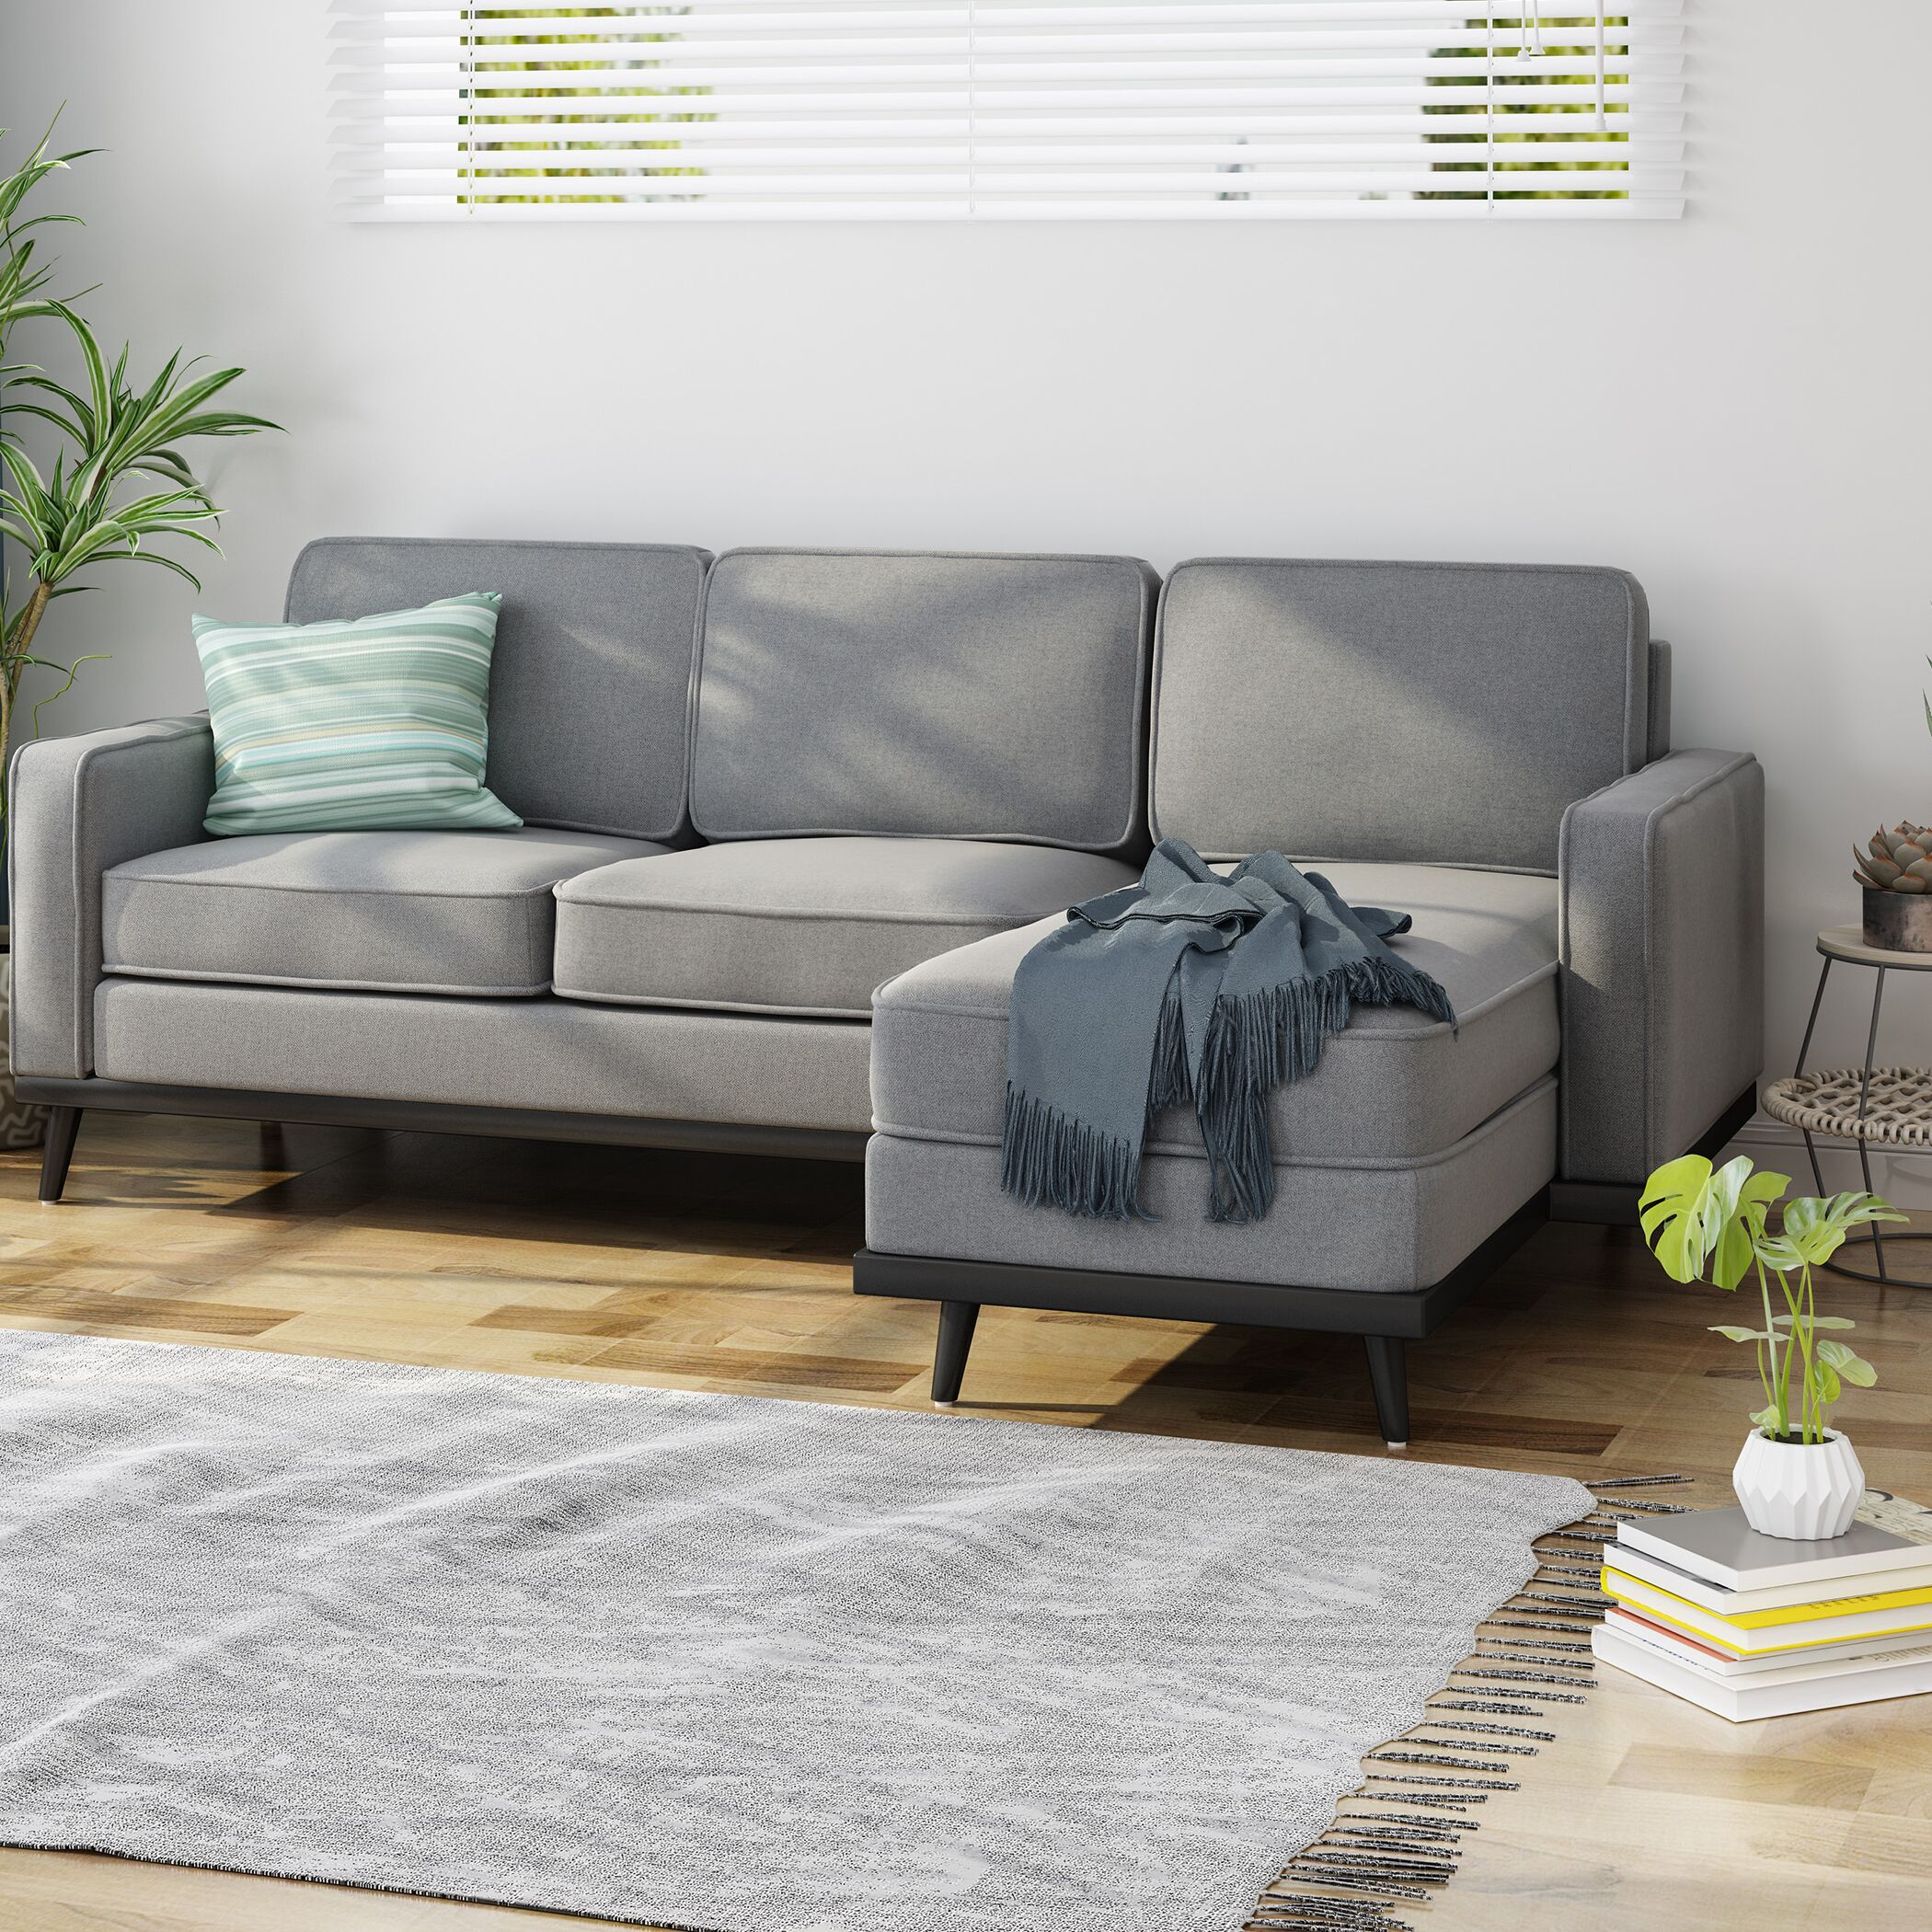 Melby Mid Century Fabric Chaise Sectional Upholstery: Gray